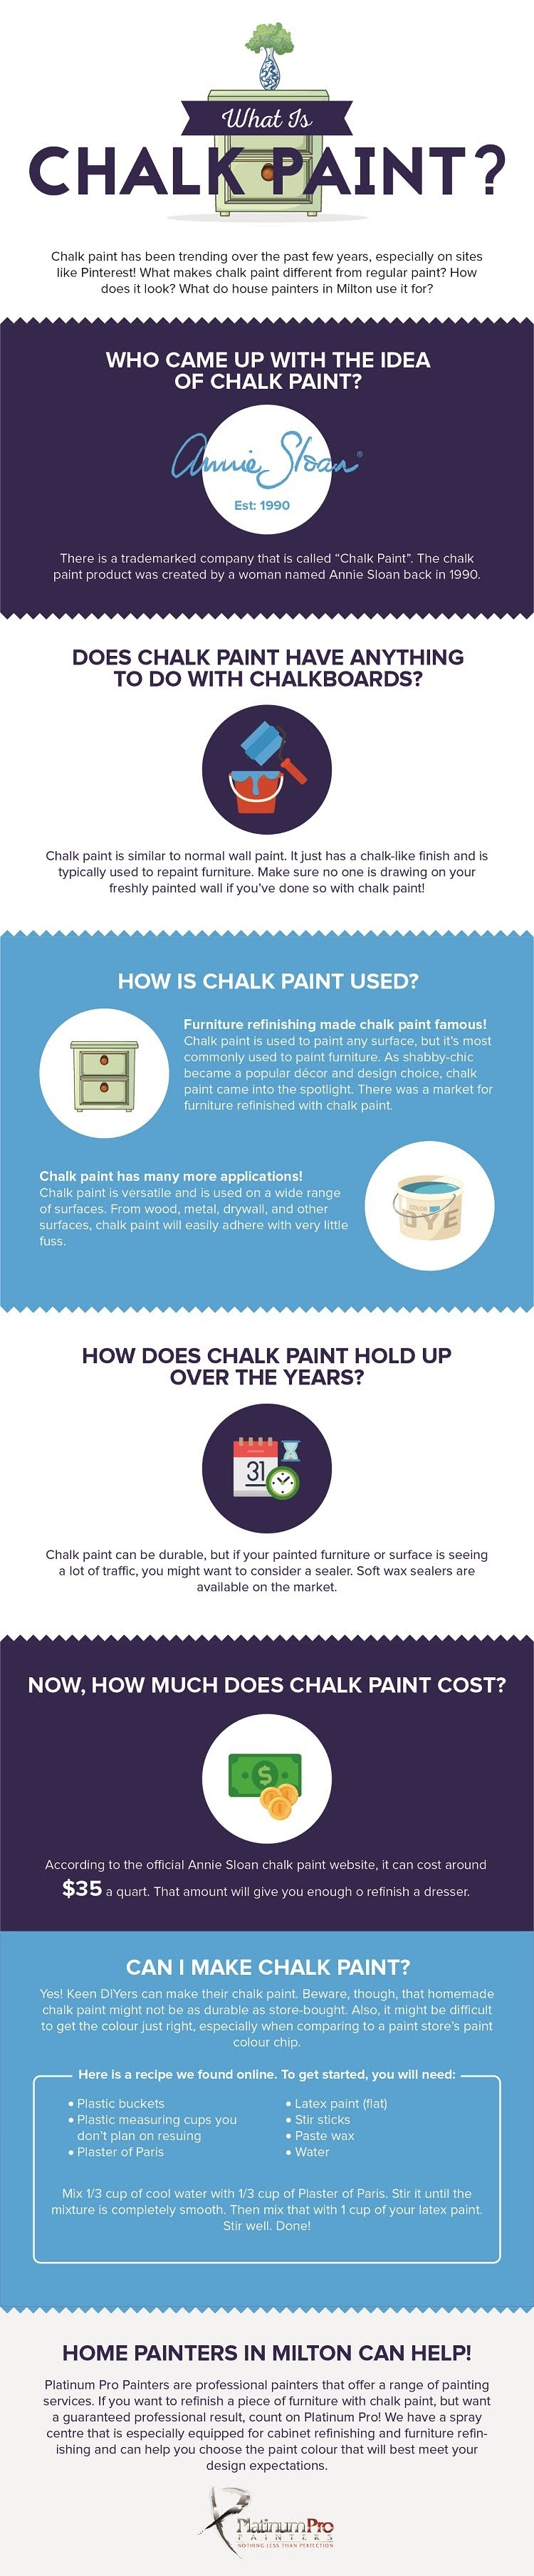 What is Chalk Paint? #infographic